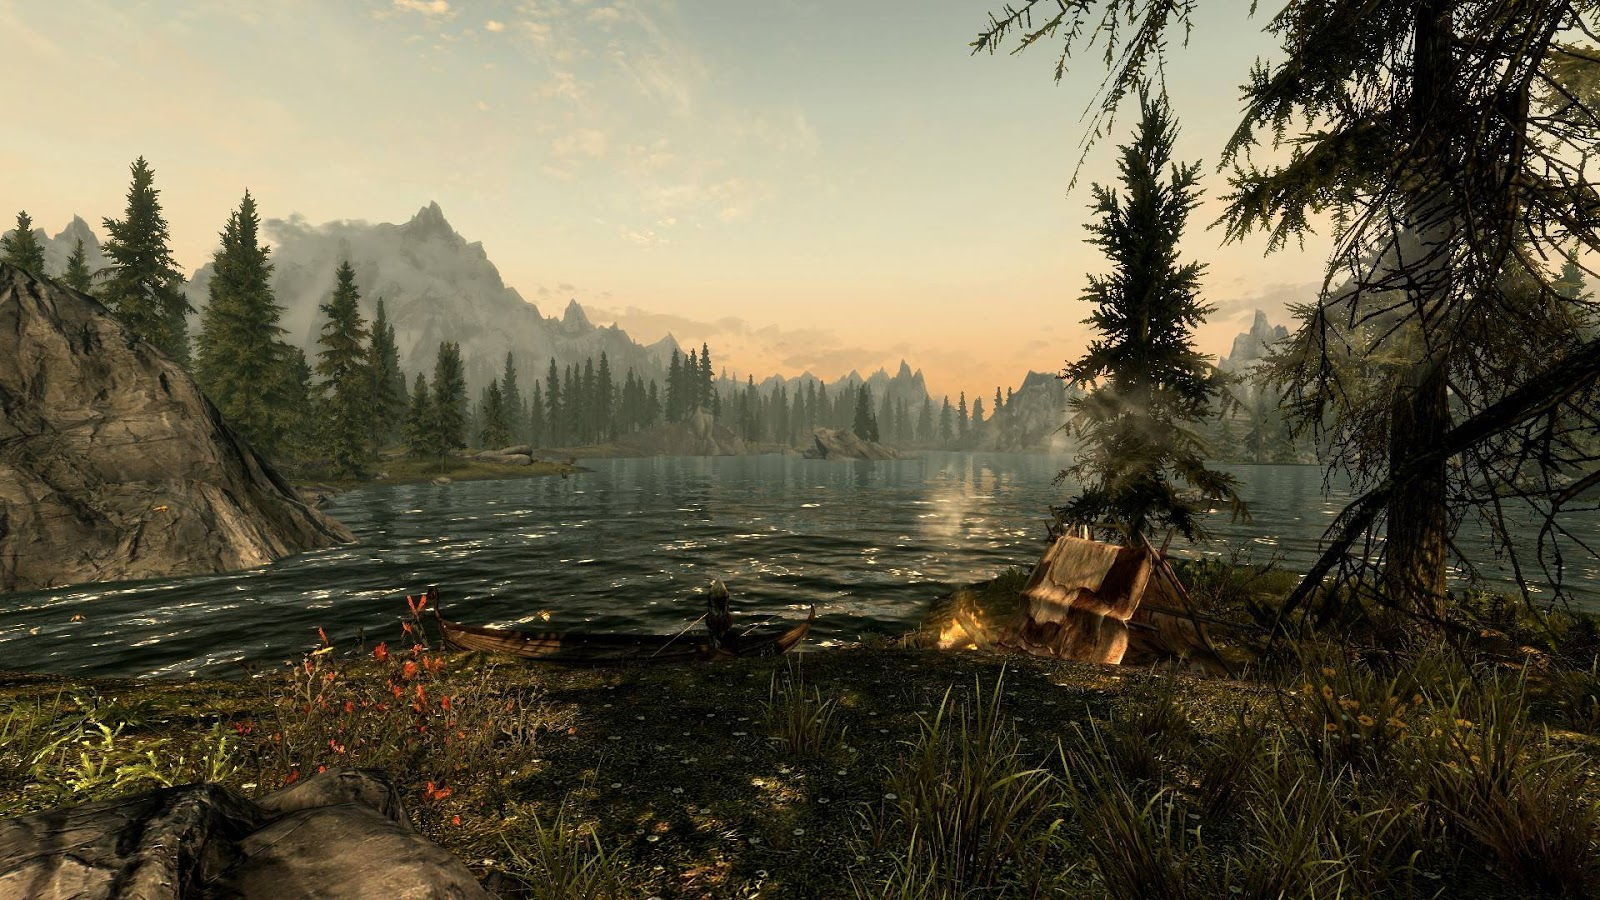 Is Skyrim V worth buying in a 2018? I'm a little worried ...